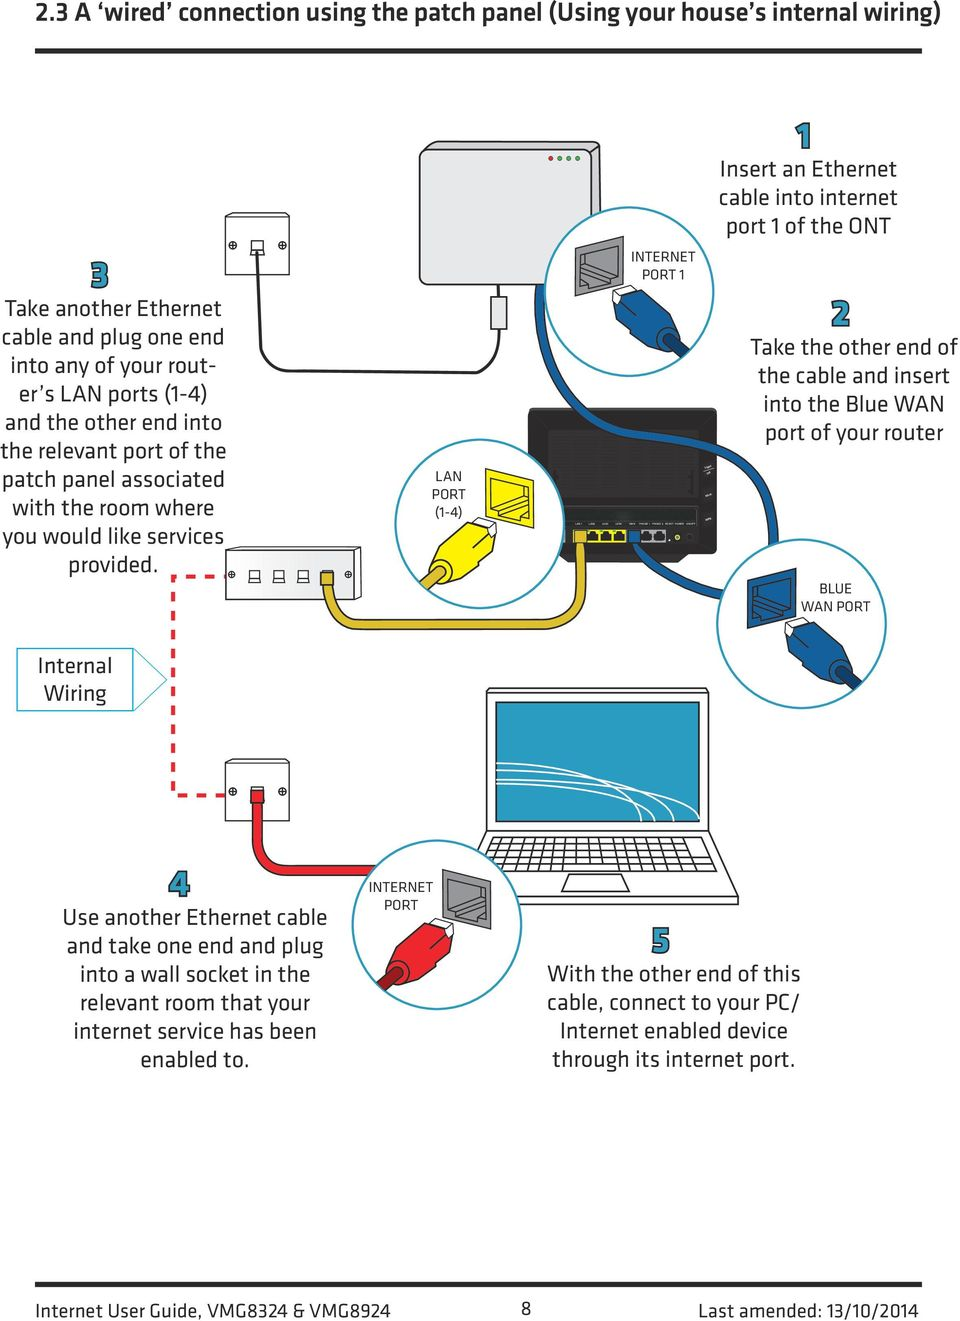 Internet User Guide For The Vmg8324 And Vmg8924 Routers Pdf Wired Diagram Your Router S Lan Ports 1 4 Other End Into